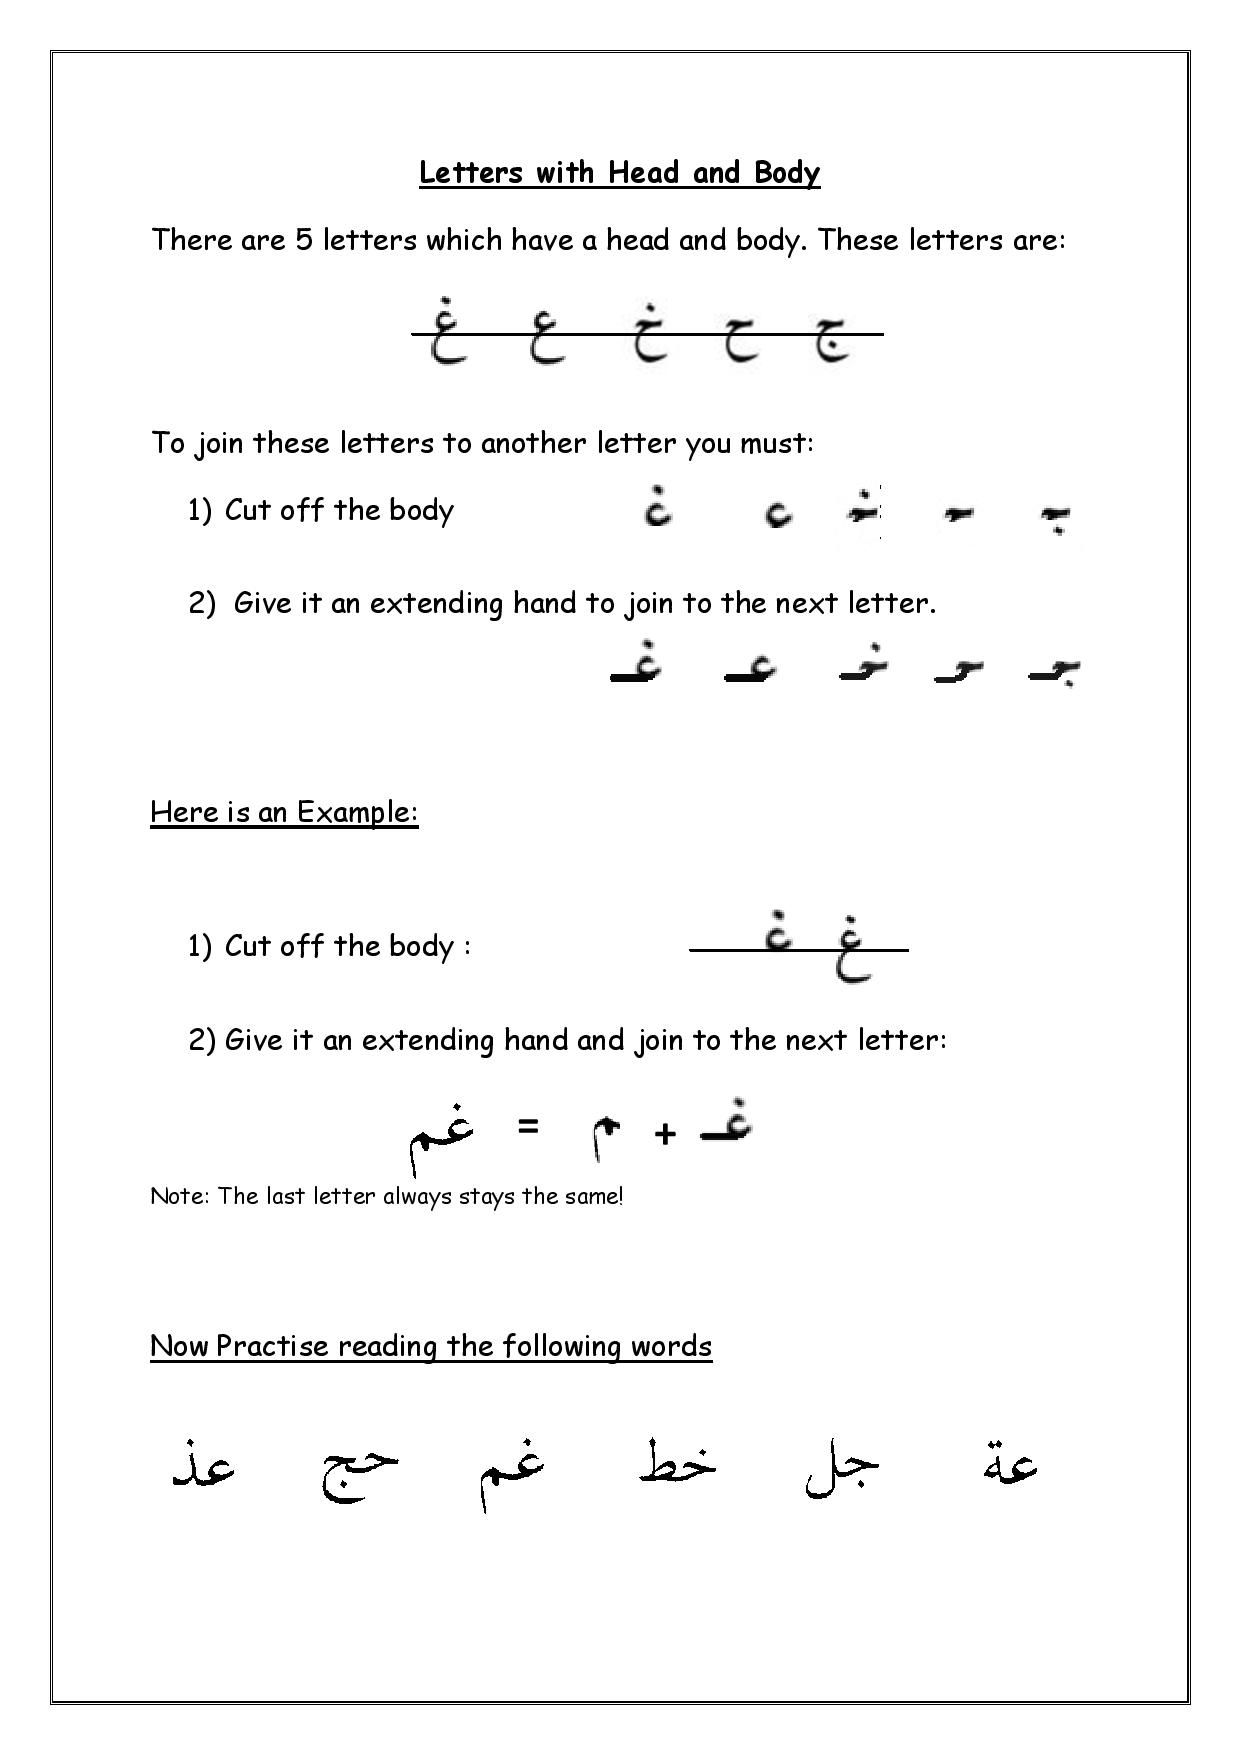 Arabic Handwriting Rules Printable Free At Abicadventures